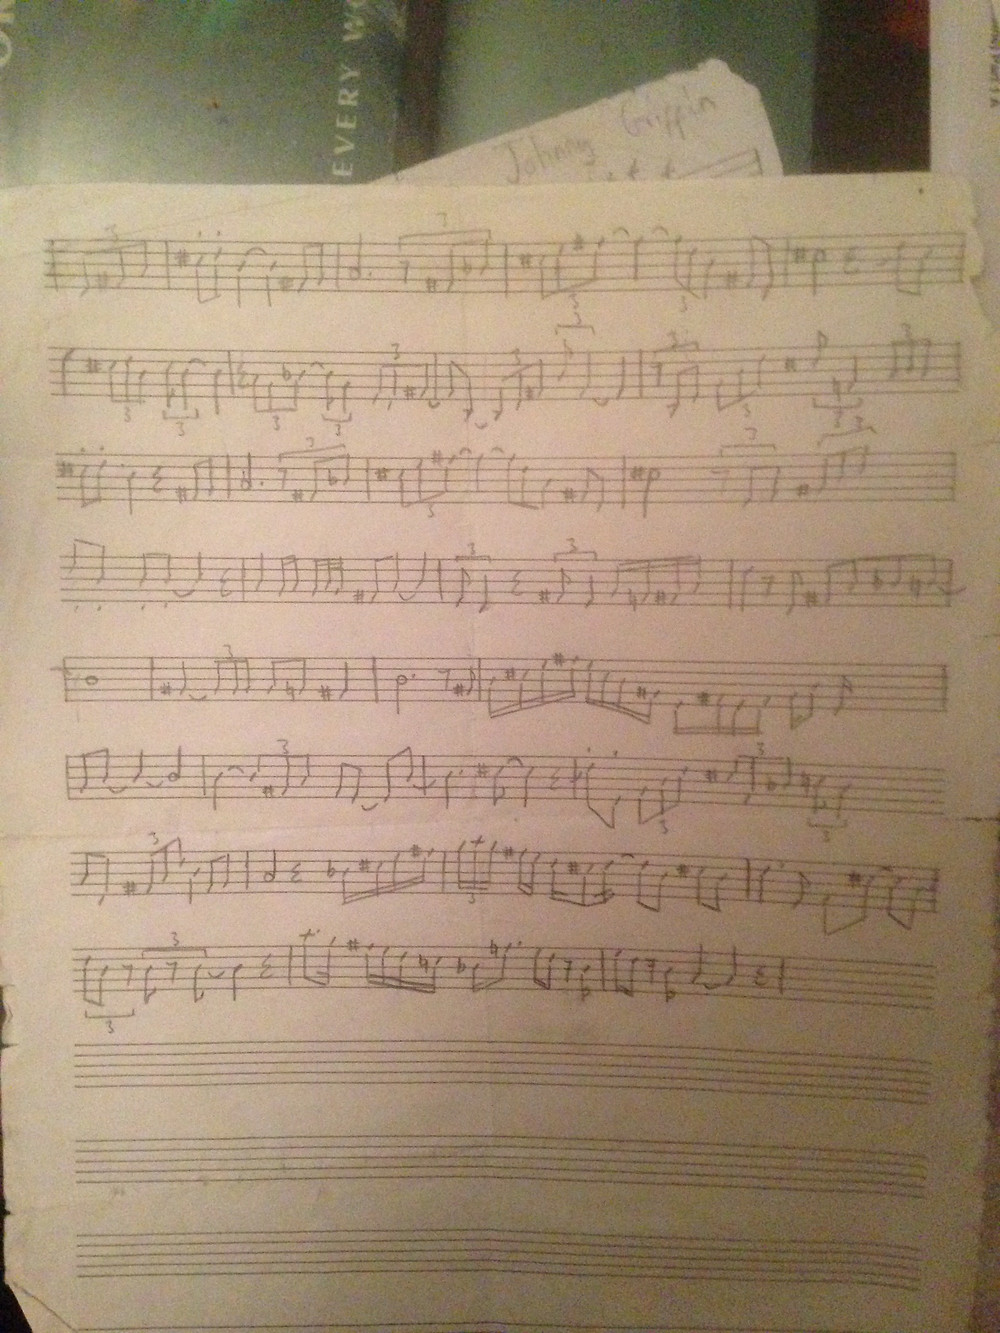 My transcription of Lester Young on 'I Can't Get Started'.